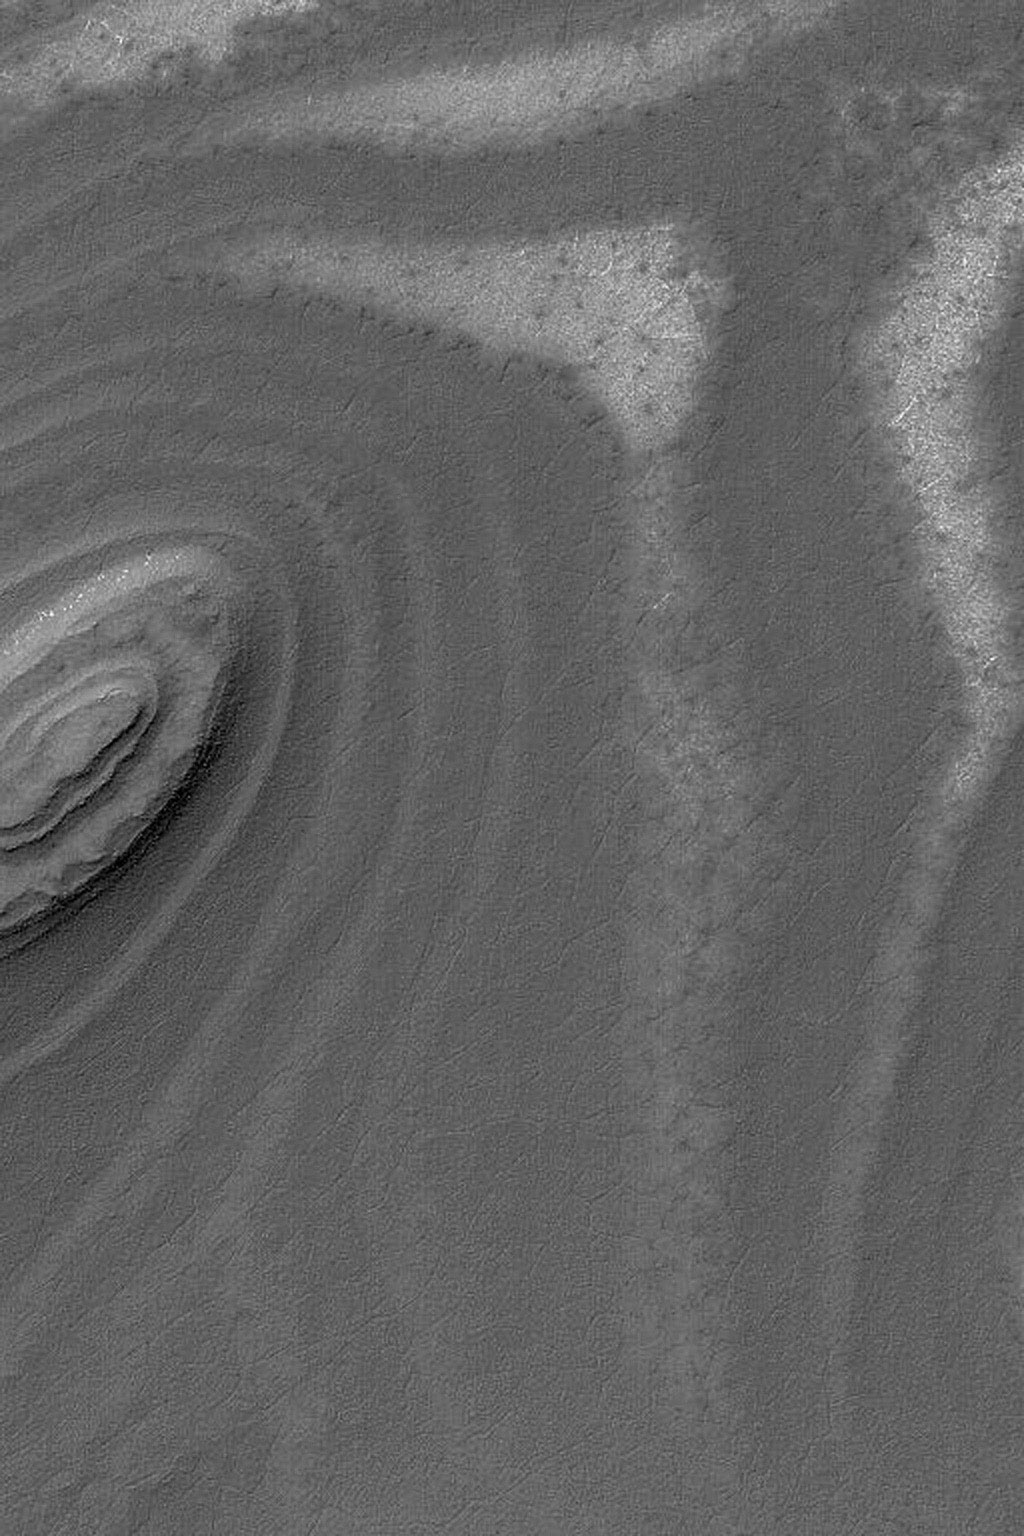 NASA's Mars Global Surveyor shows exposures of layered material on slopes in the south polar region on Mars.